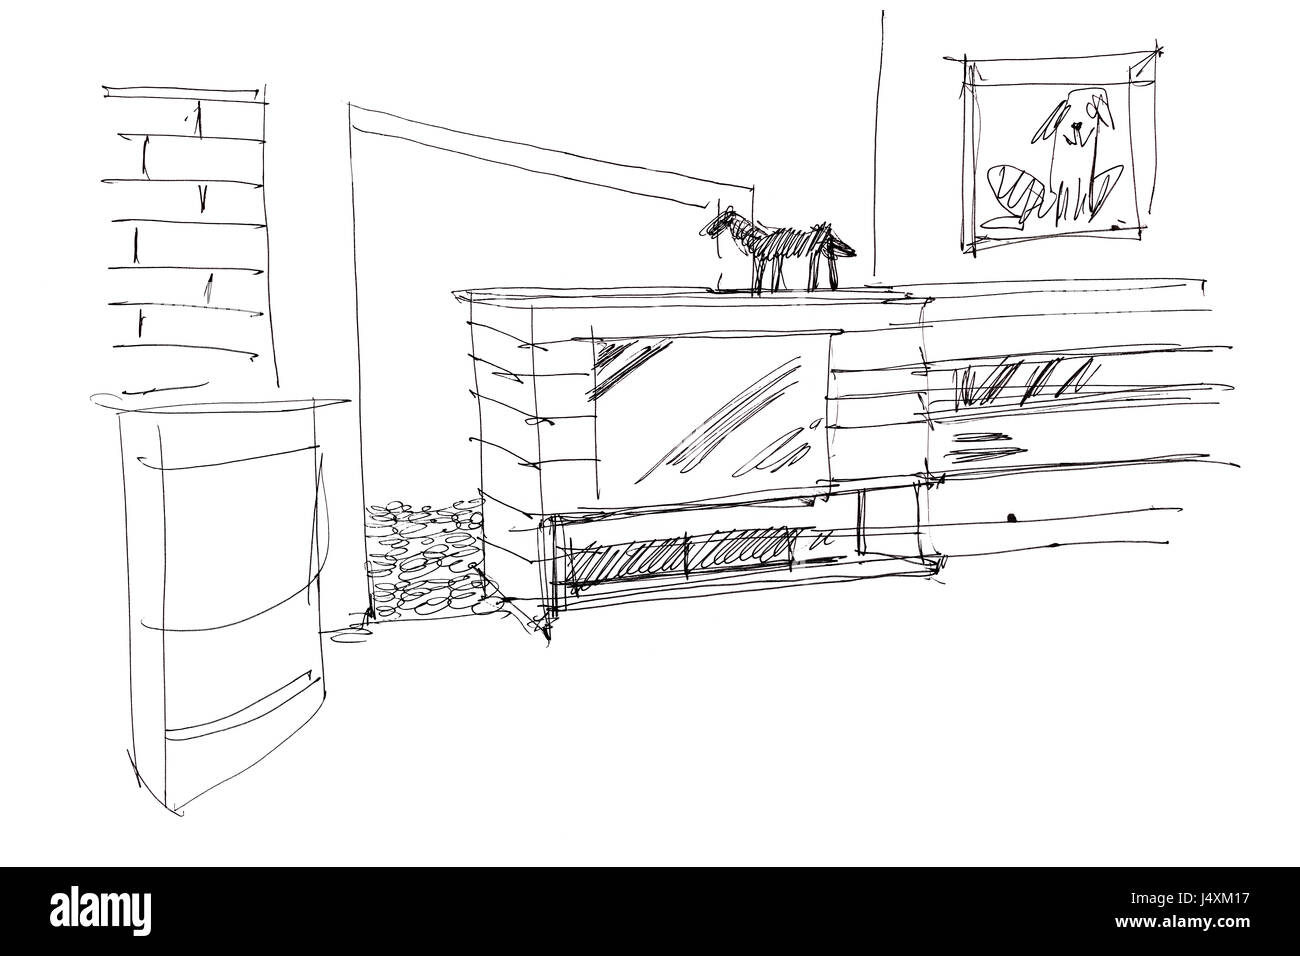 Designer Freehand Sketch Of Living Room Interior With Furniture